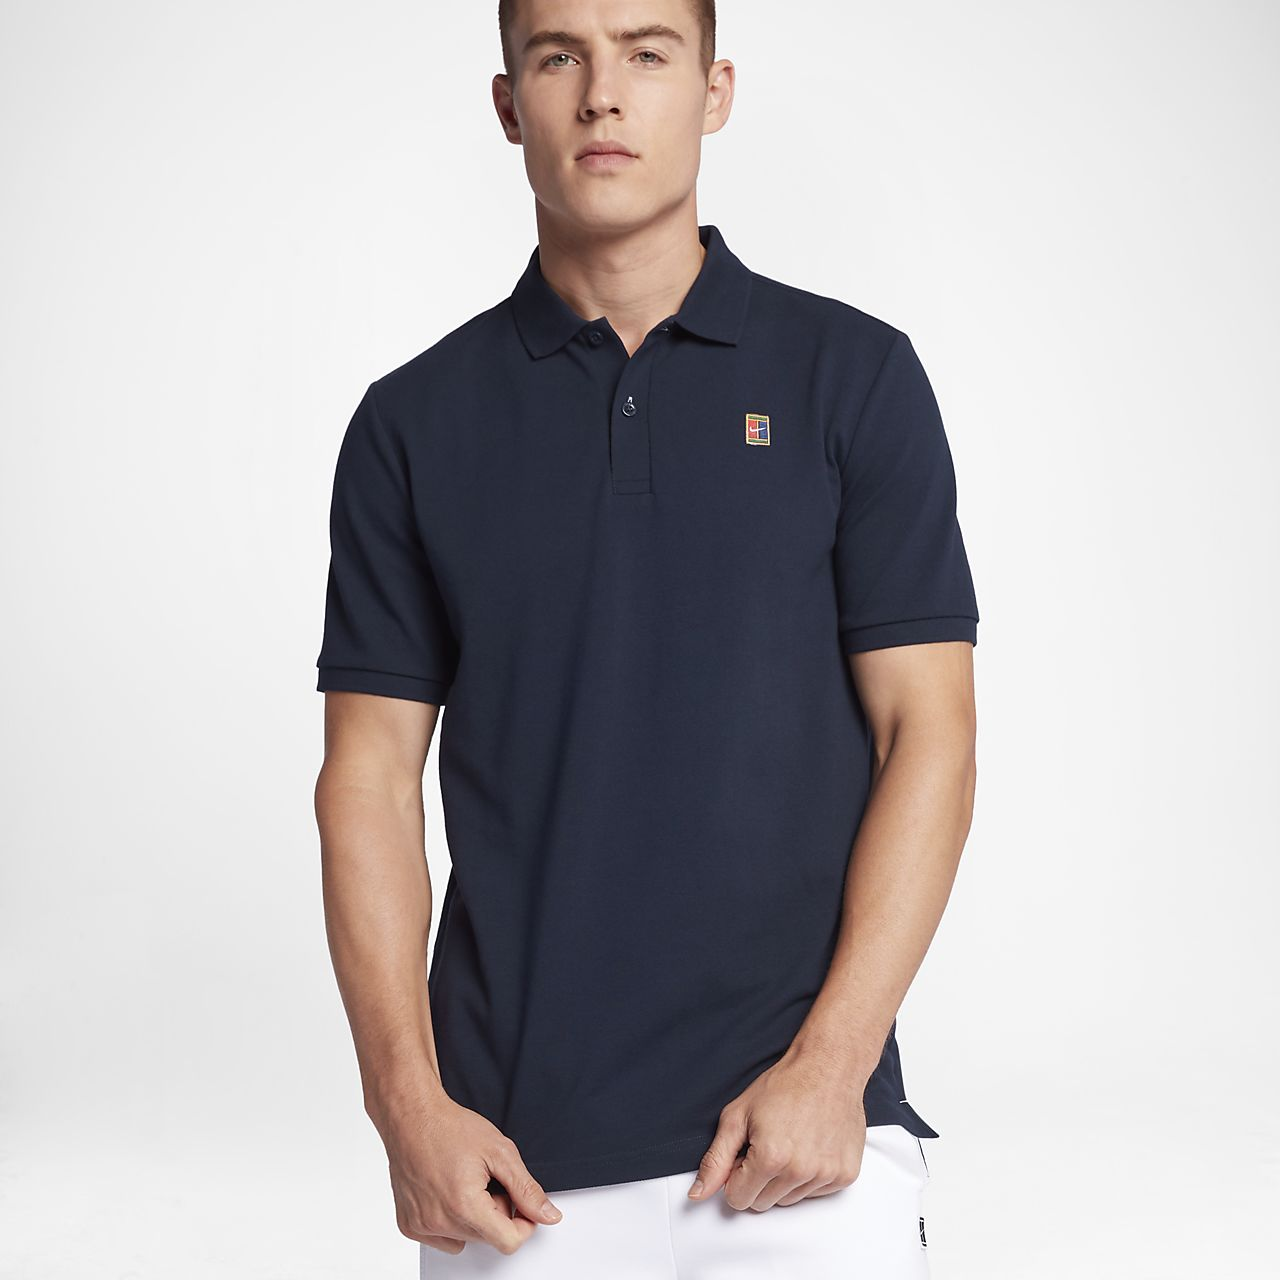 NikeCourt Heritage Men's Tennis Polo